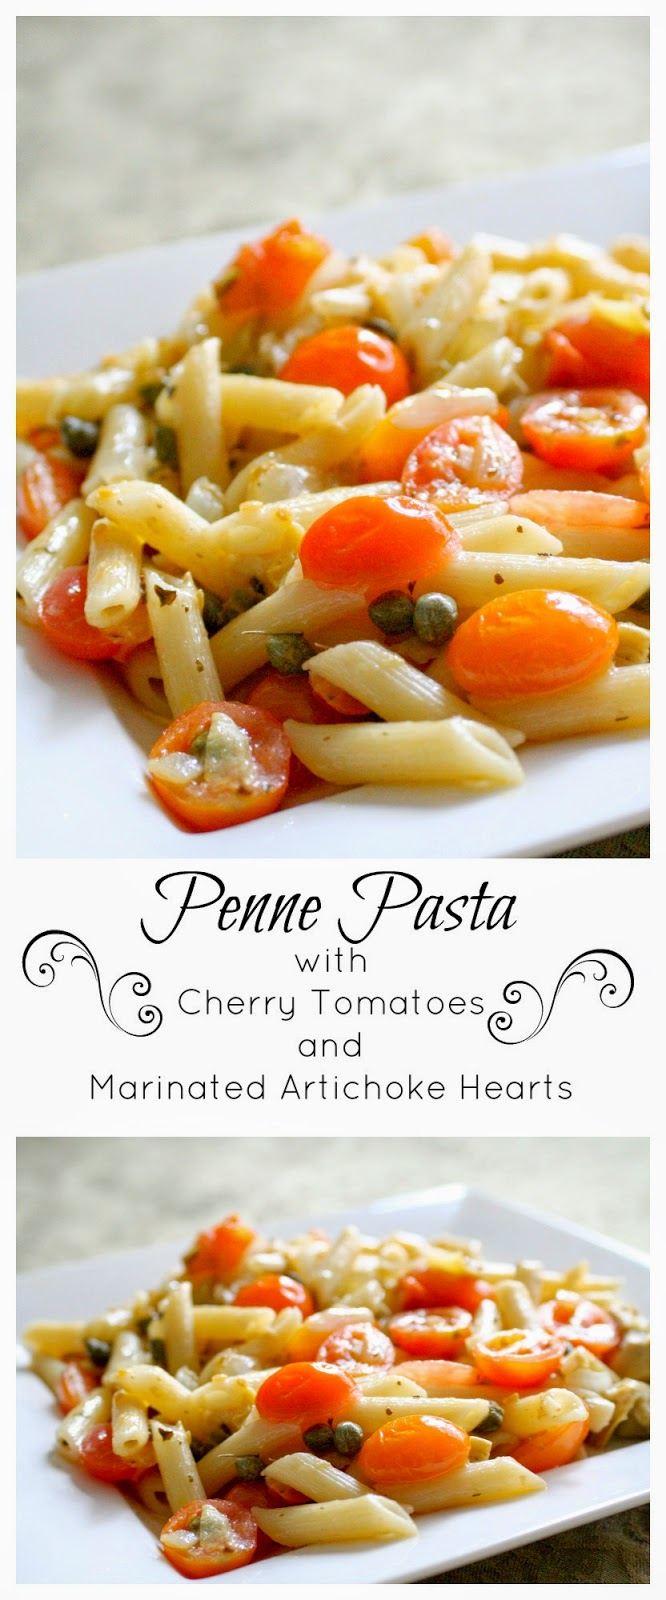 Penne Pasta with Cherry Tomatoes and Marinated Artichoke Hearts